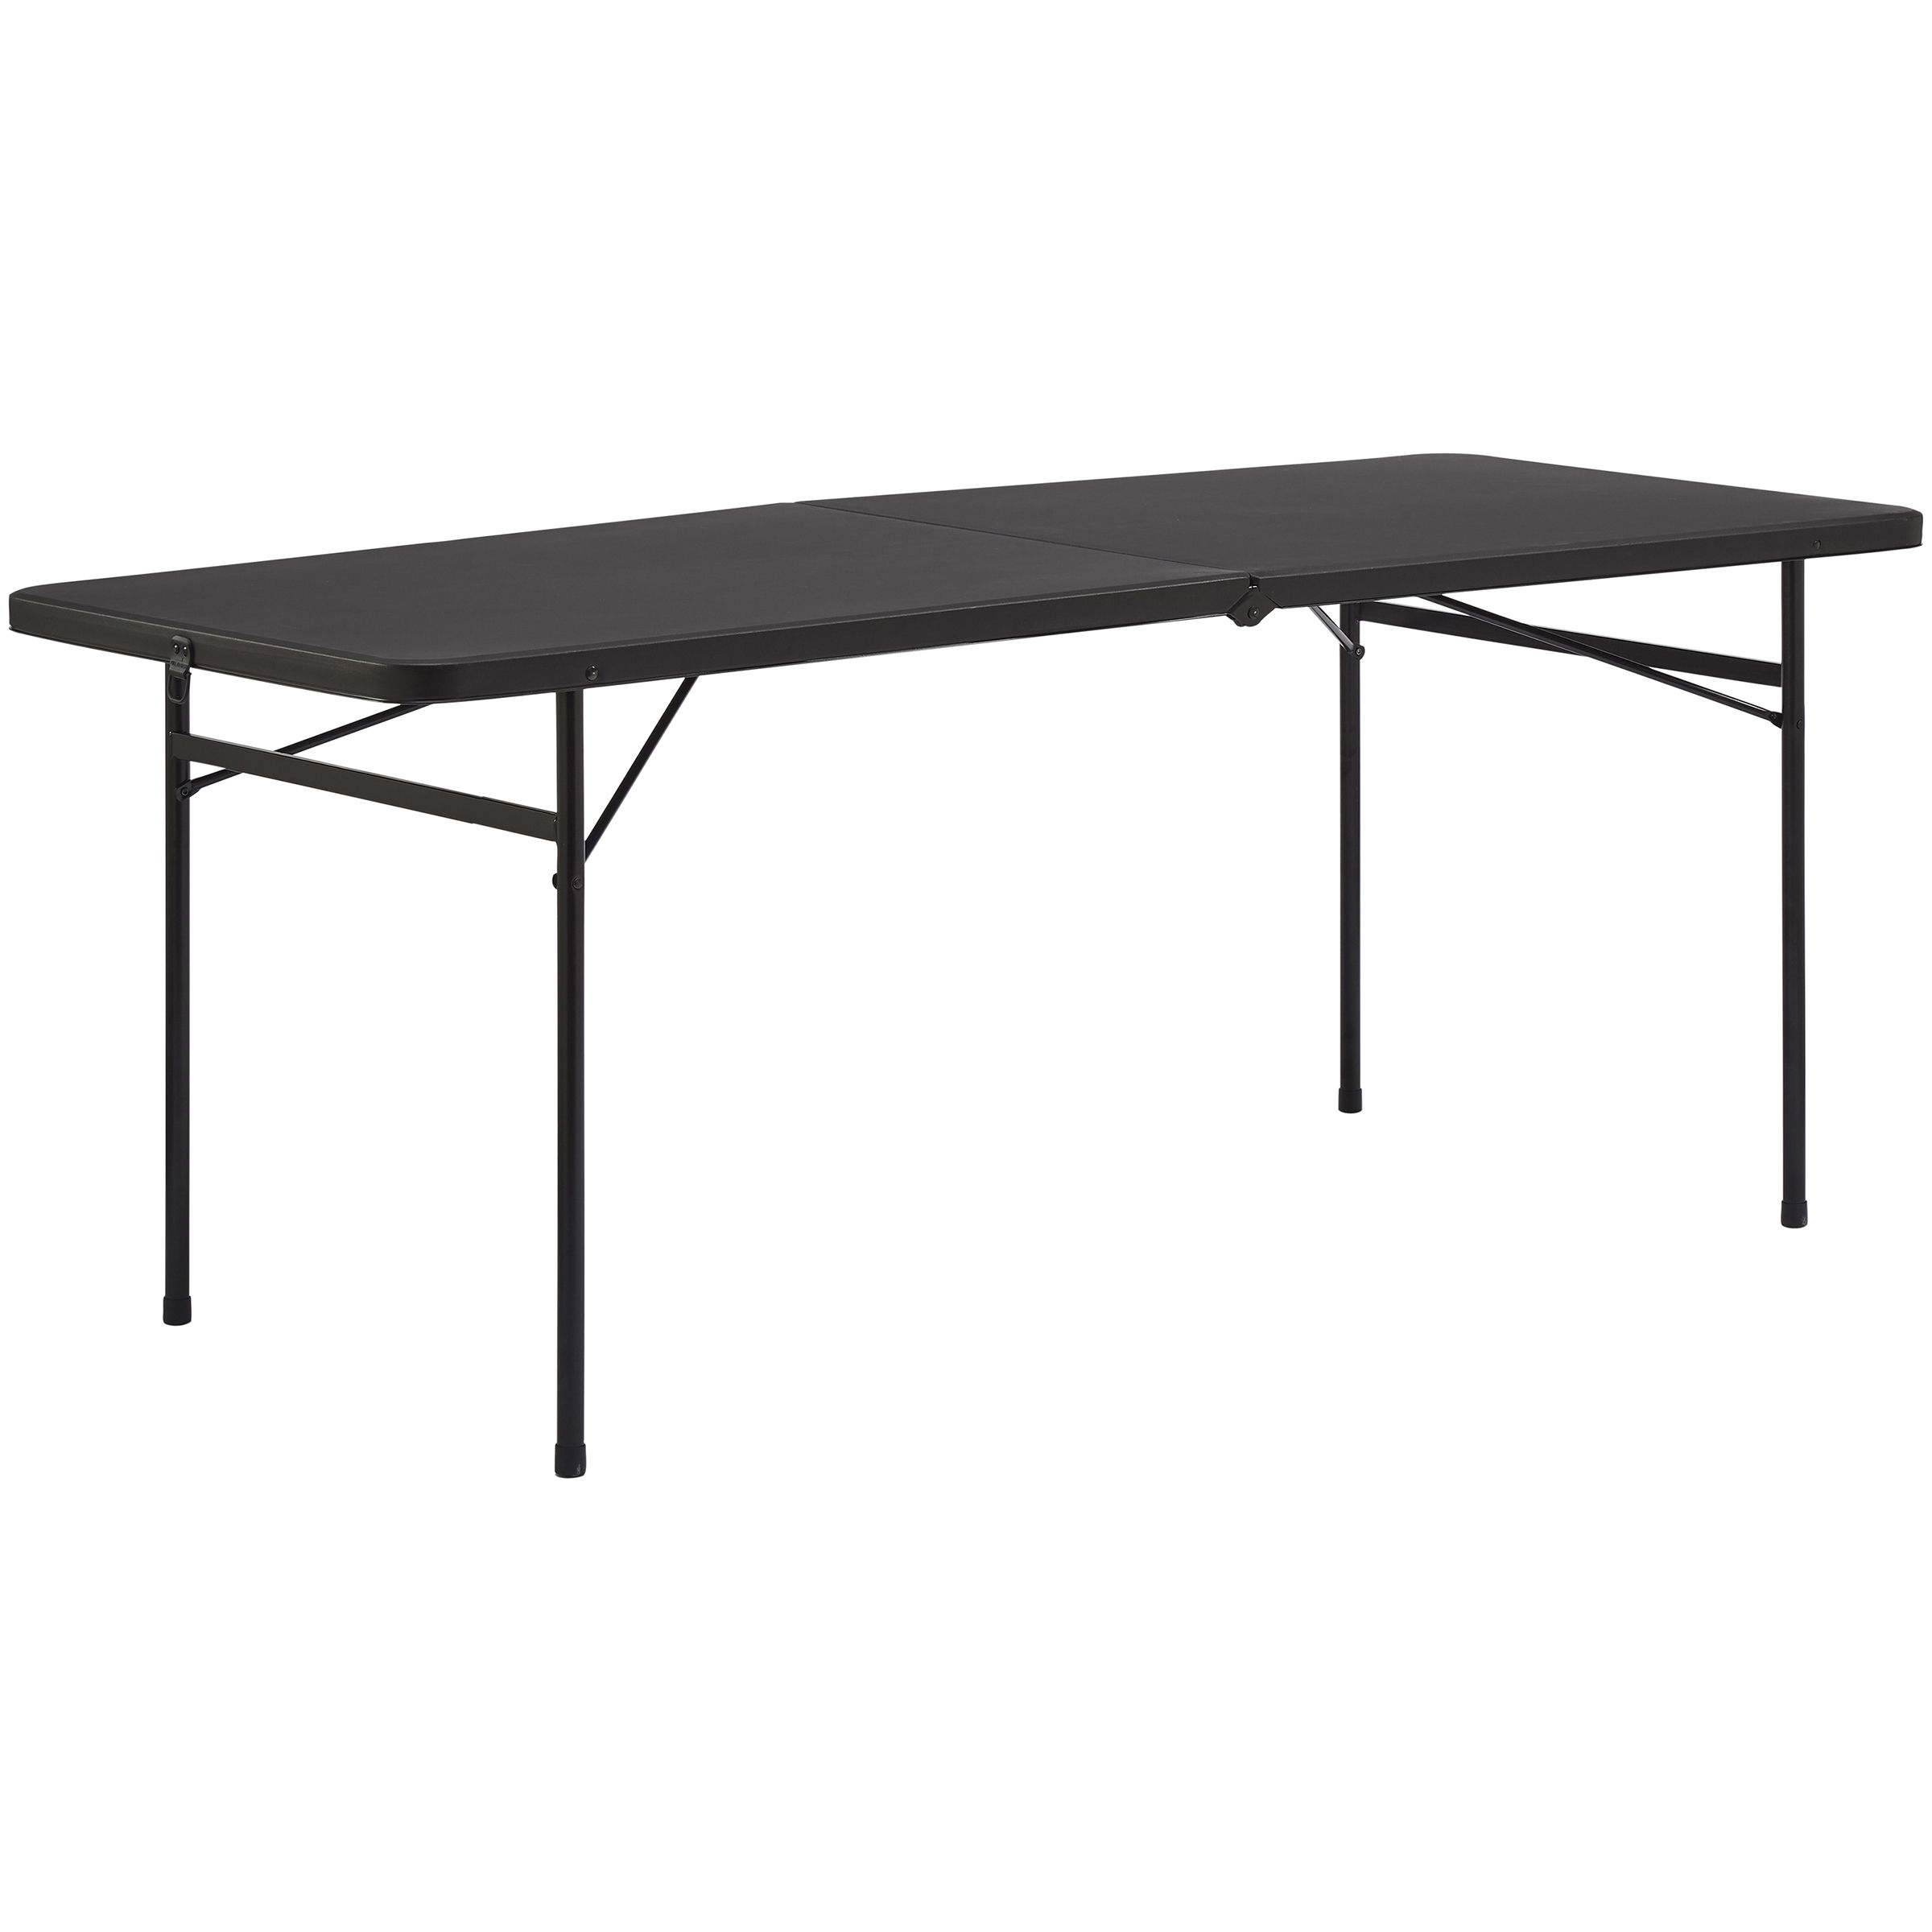 Pin On Folding Tables And Chairs